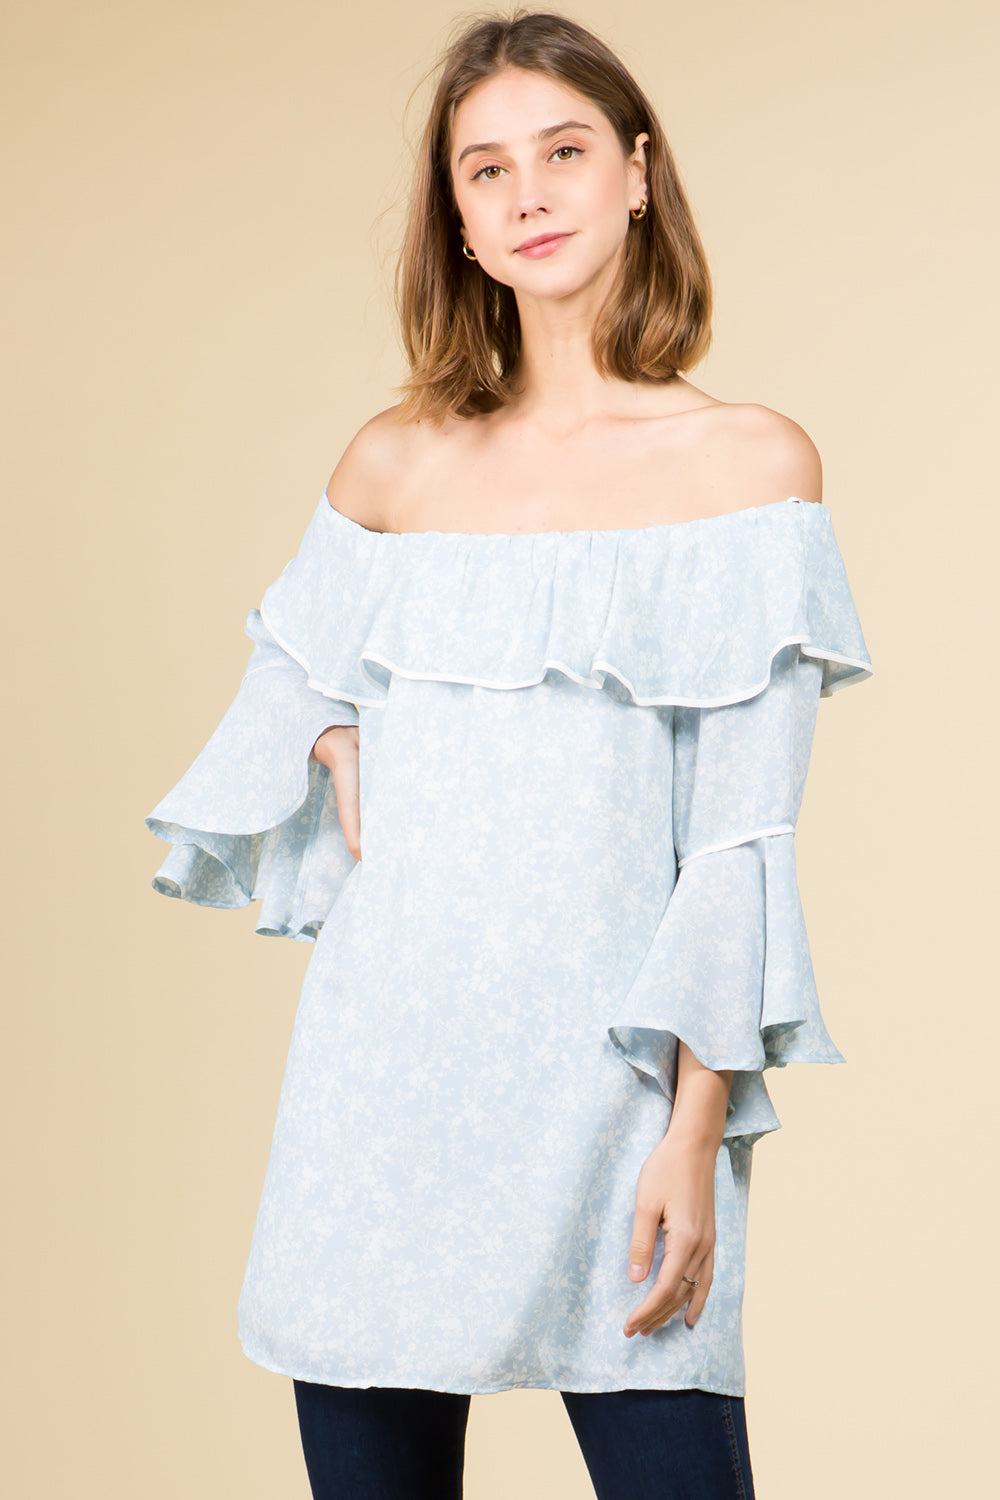 OFF SHOULDER RUFFLE TOP WITH BELL SLEEVES